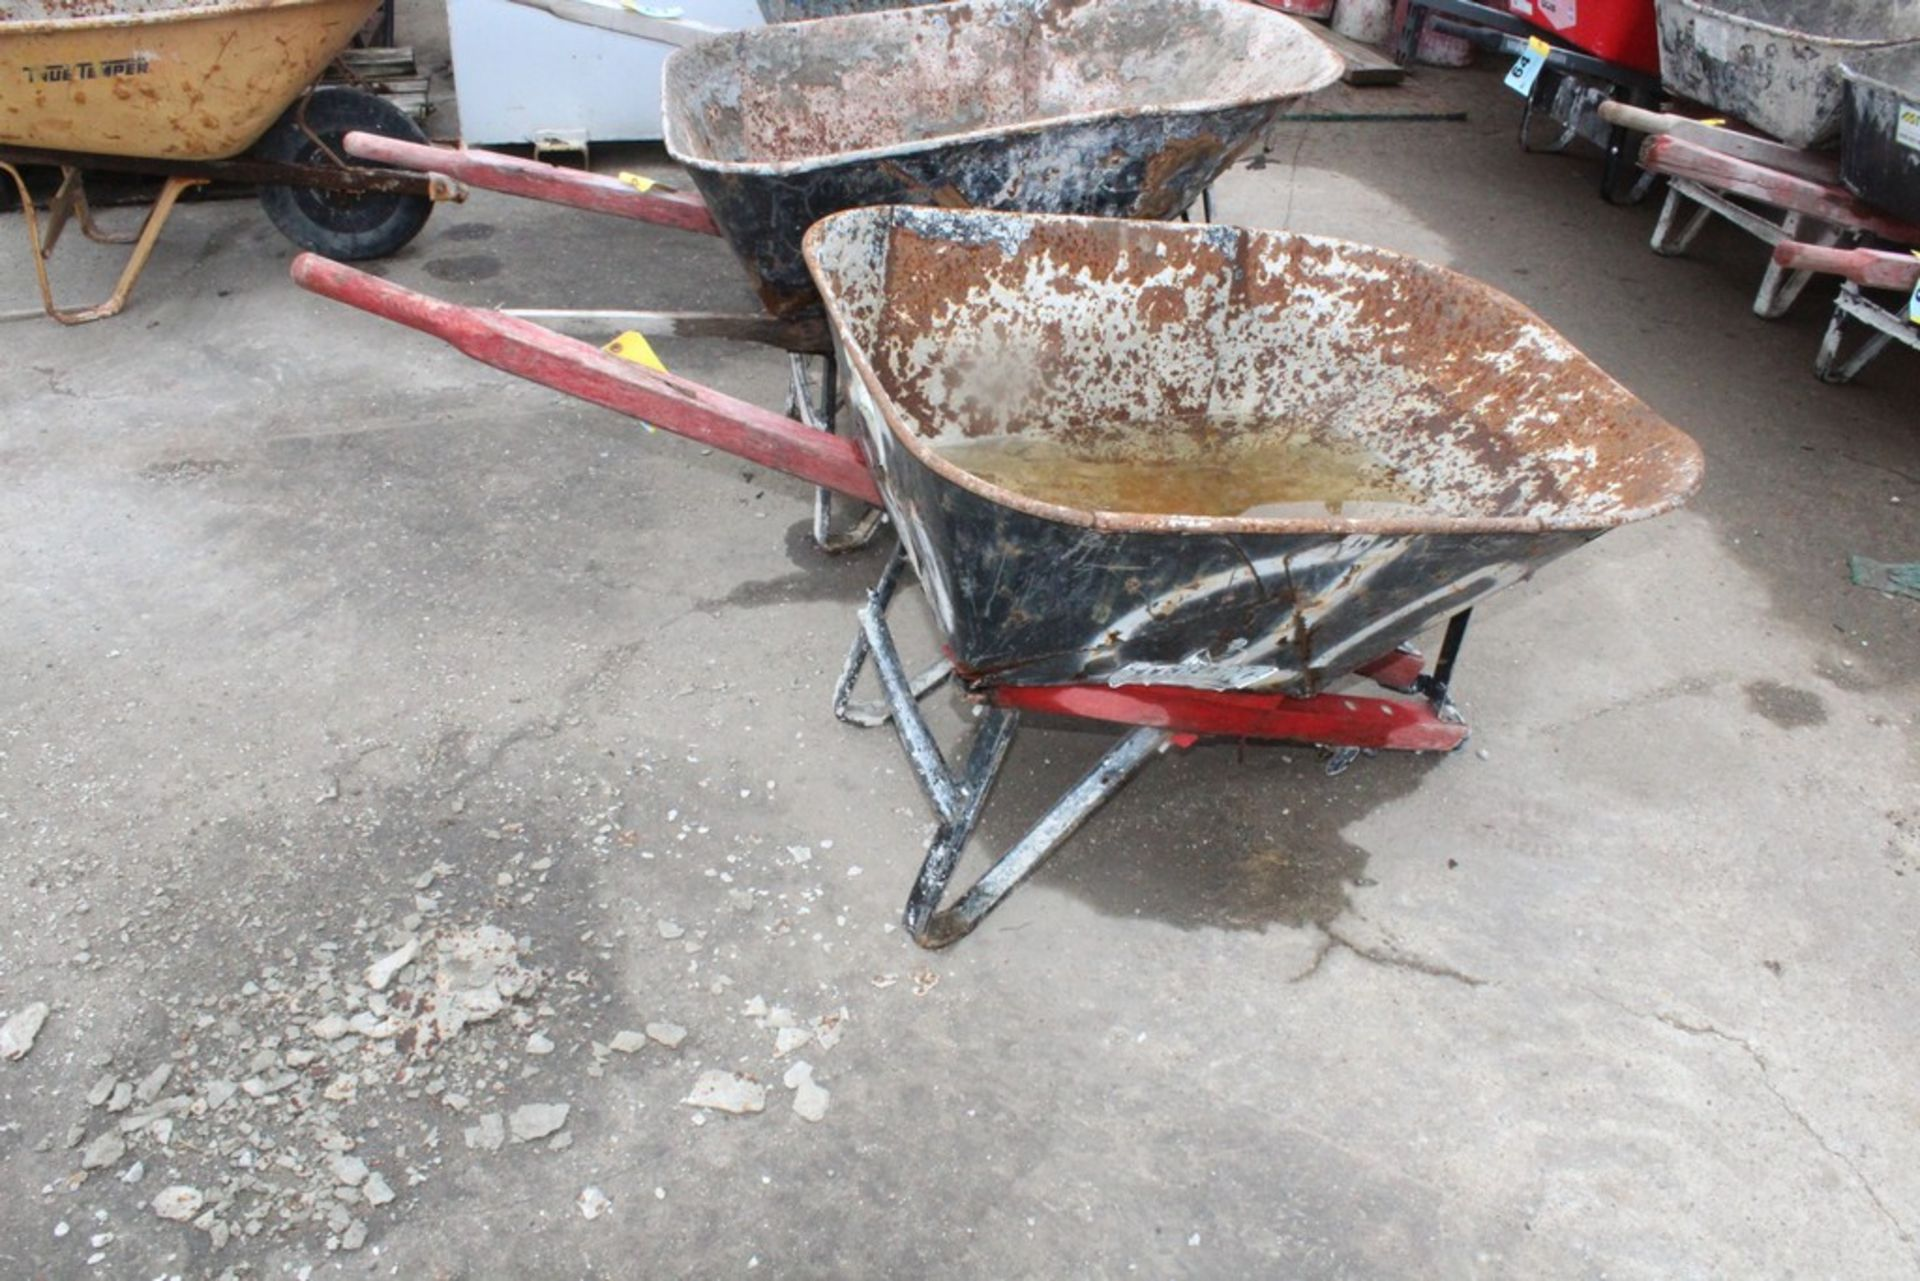 Lot 59 - HEAVY DUTY CONSTRUCTION WHEEL BARROW BROKEN HANDLE NO TIRE